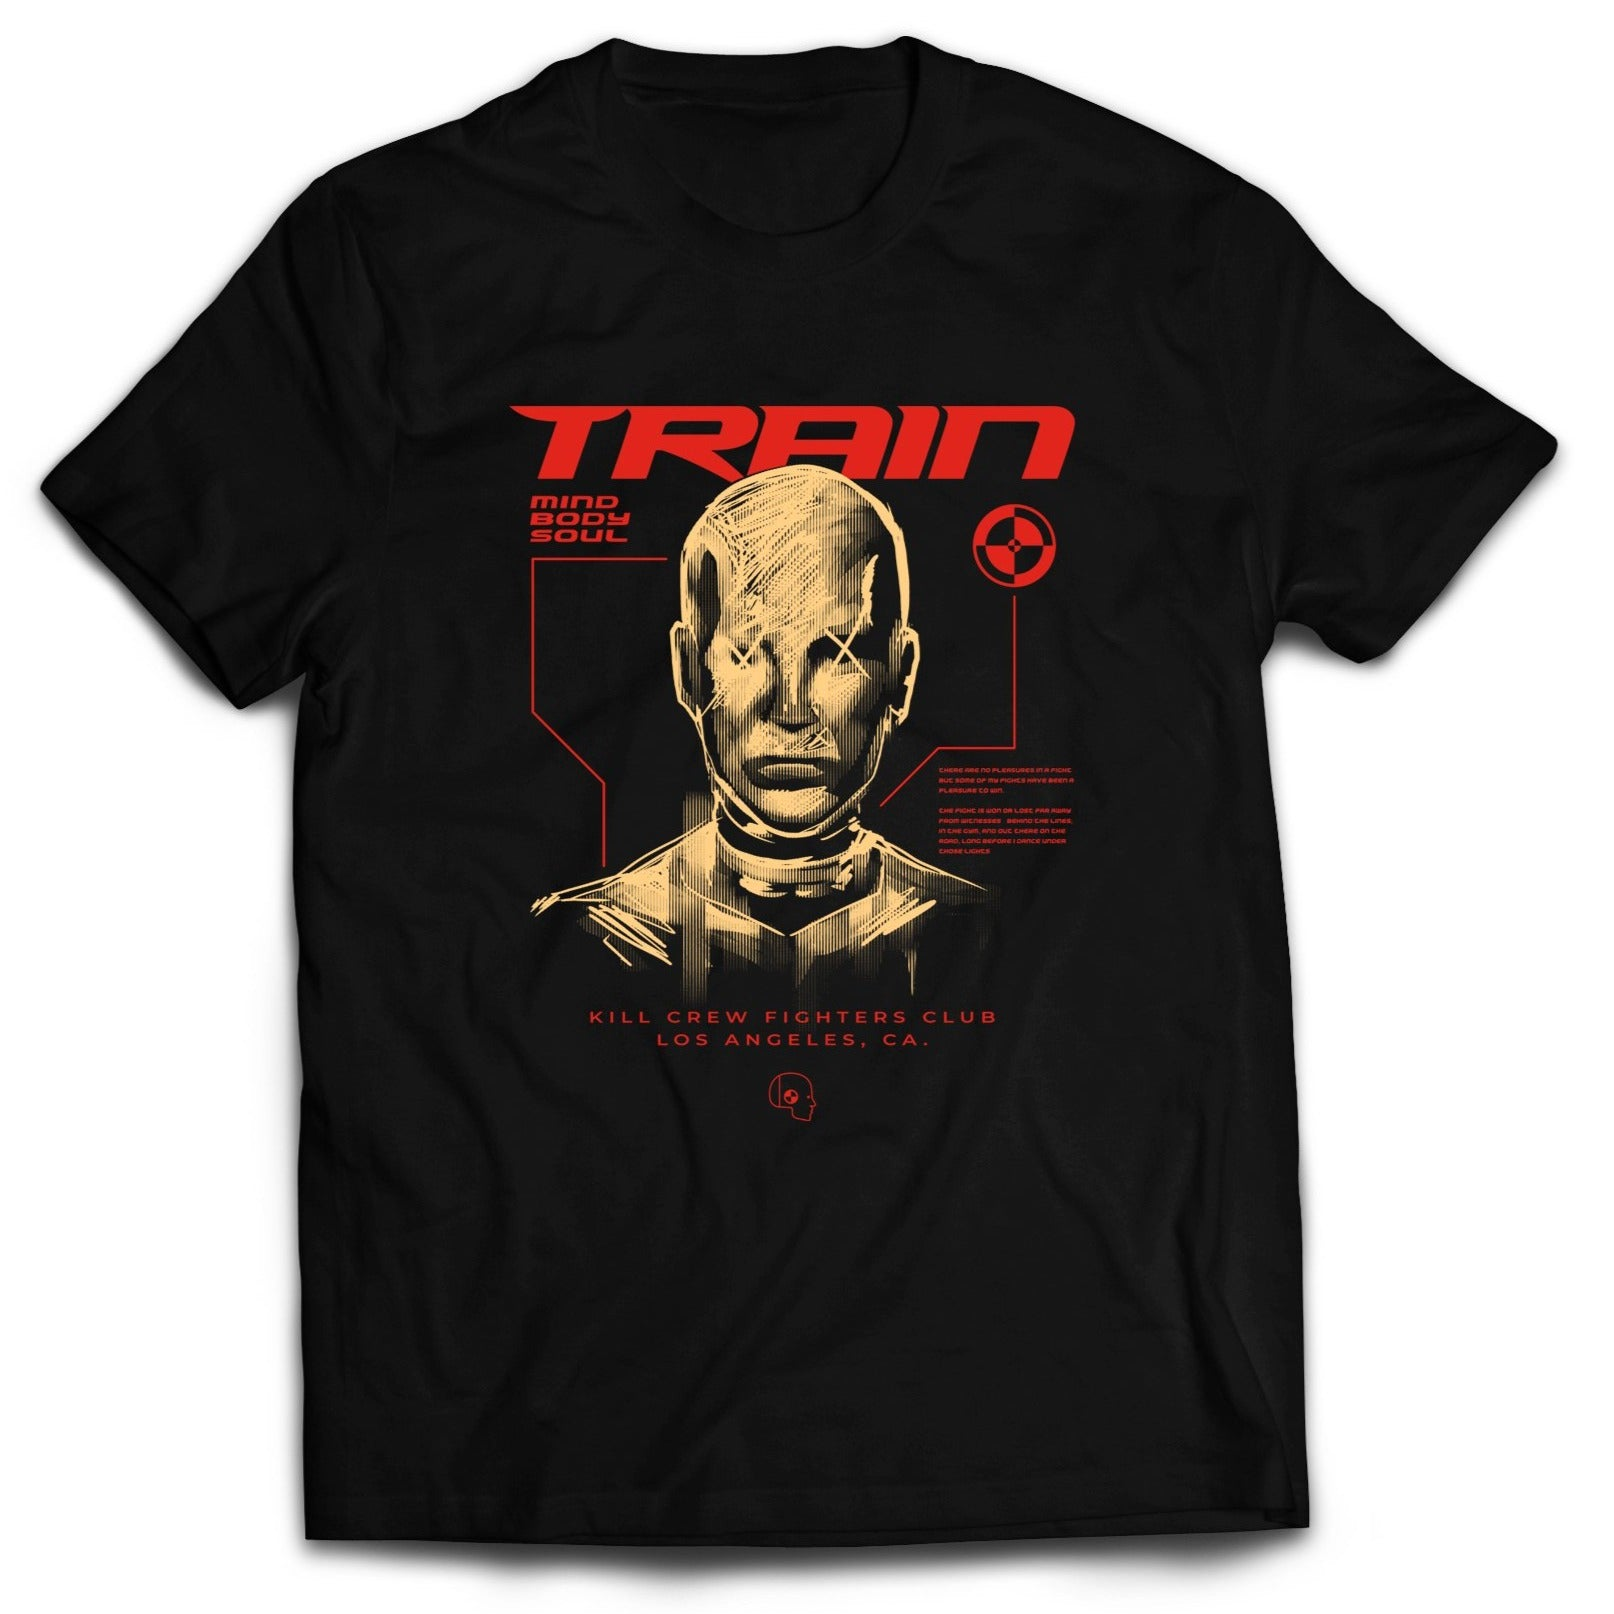 TRAIN MIND BODY SOUL T-SHIRT - BLACK